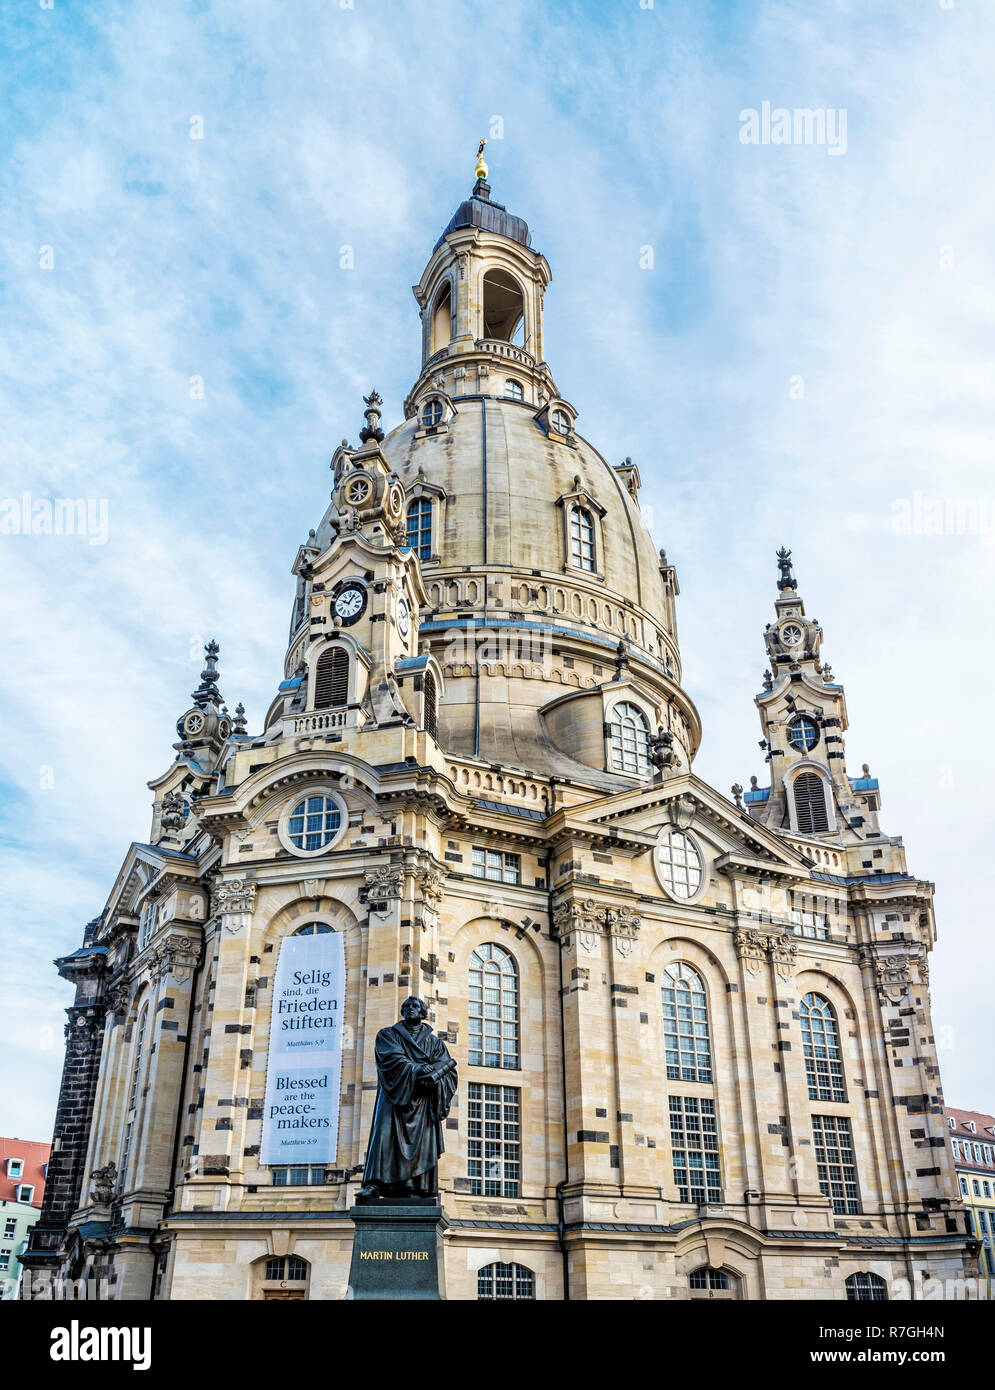 Frauenkirche with Martin Luther statue in Dresden, Germany. Religious architecture. Travel destination. Stock Photo